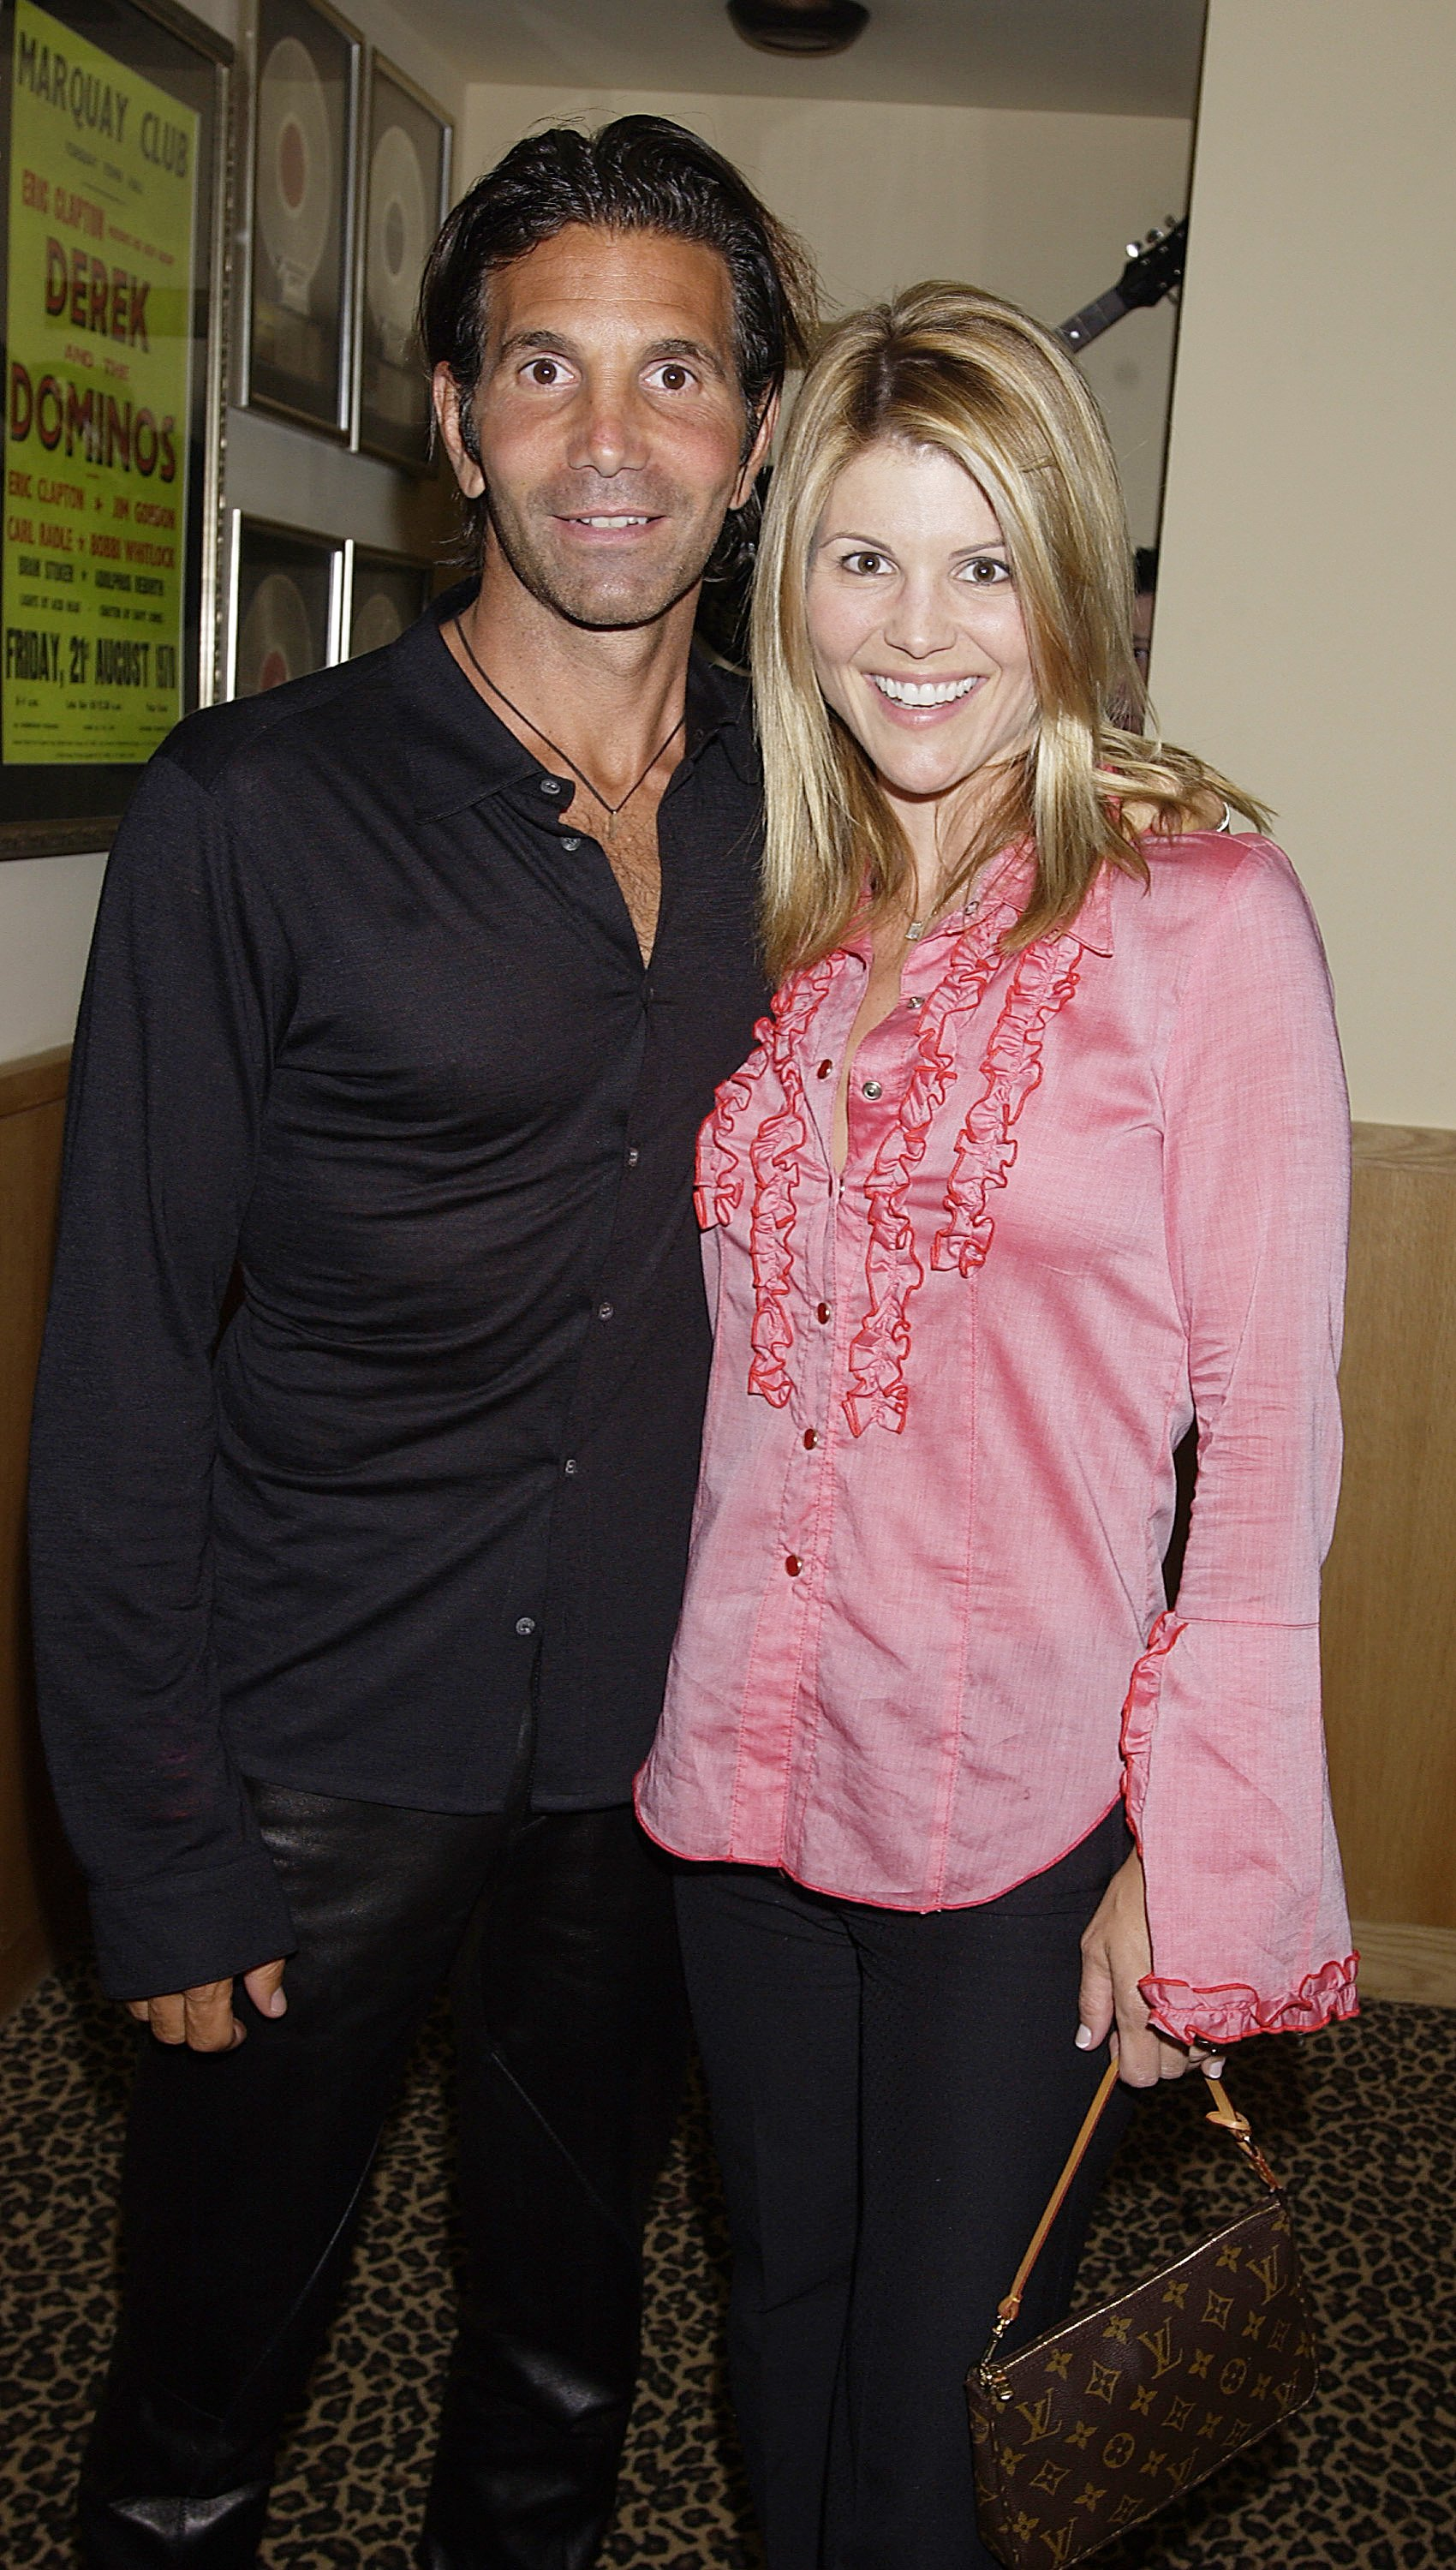 Lori Laughlin and Mossimo Giannulli arrive April 26, 2002 at the Hard Rock Hotel in Las Vegas.   Source: Getty Images